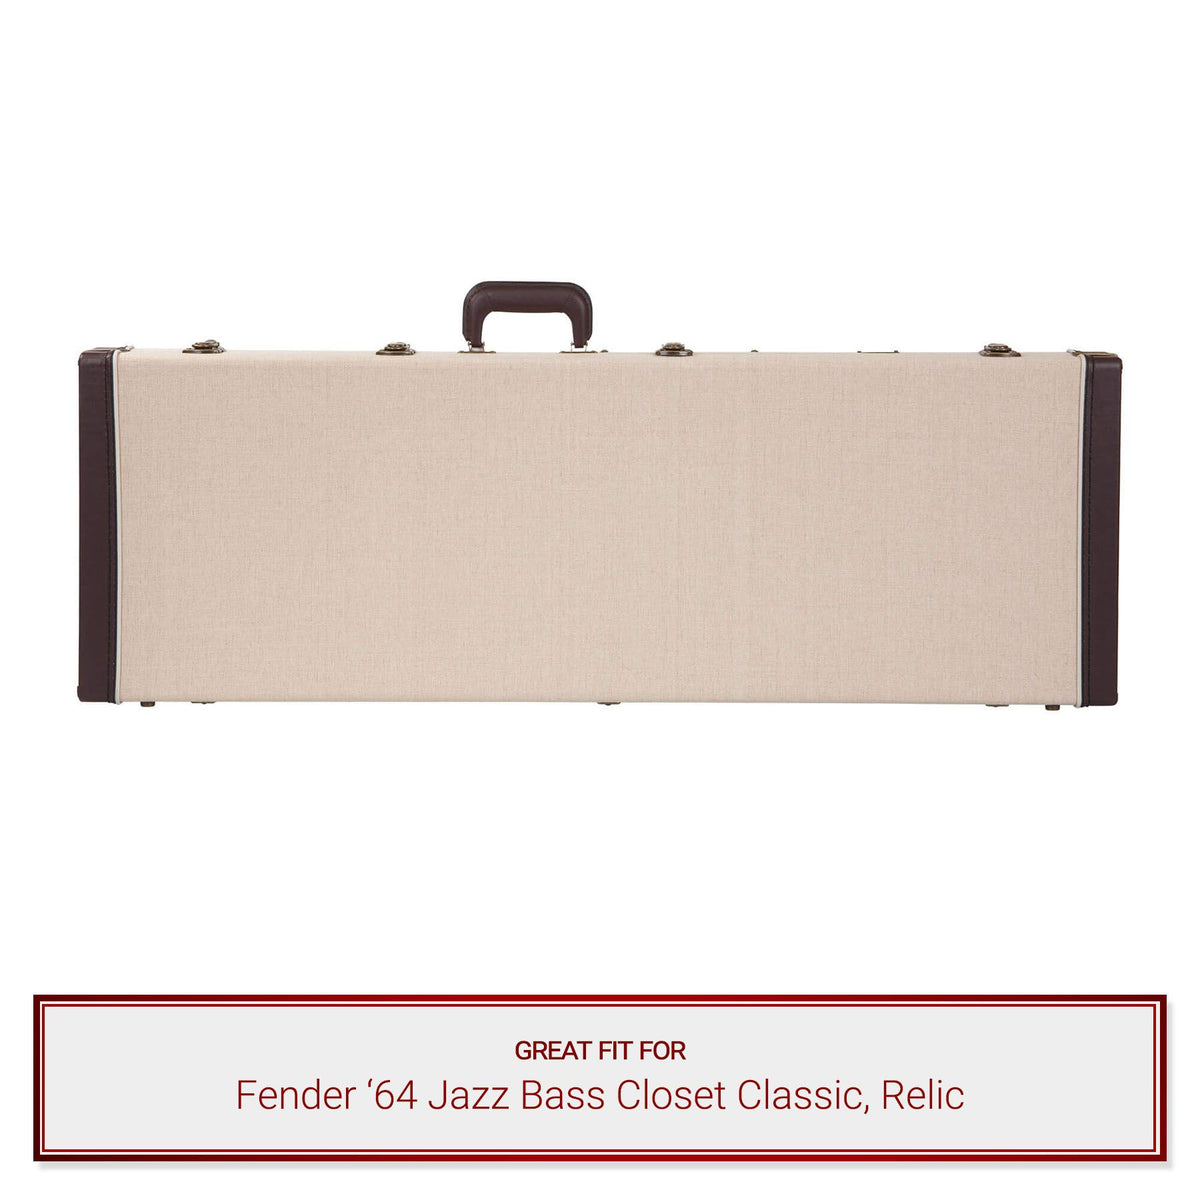 Gator Cases Journeyman Bass Guitar Case for Fender '64 Jazz Bass Closet Classic, Relic Electric Bass Guitars